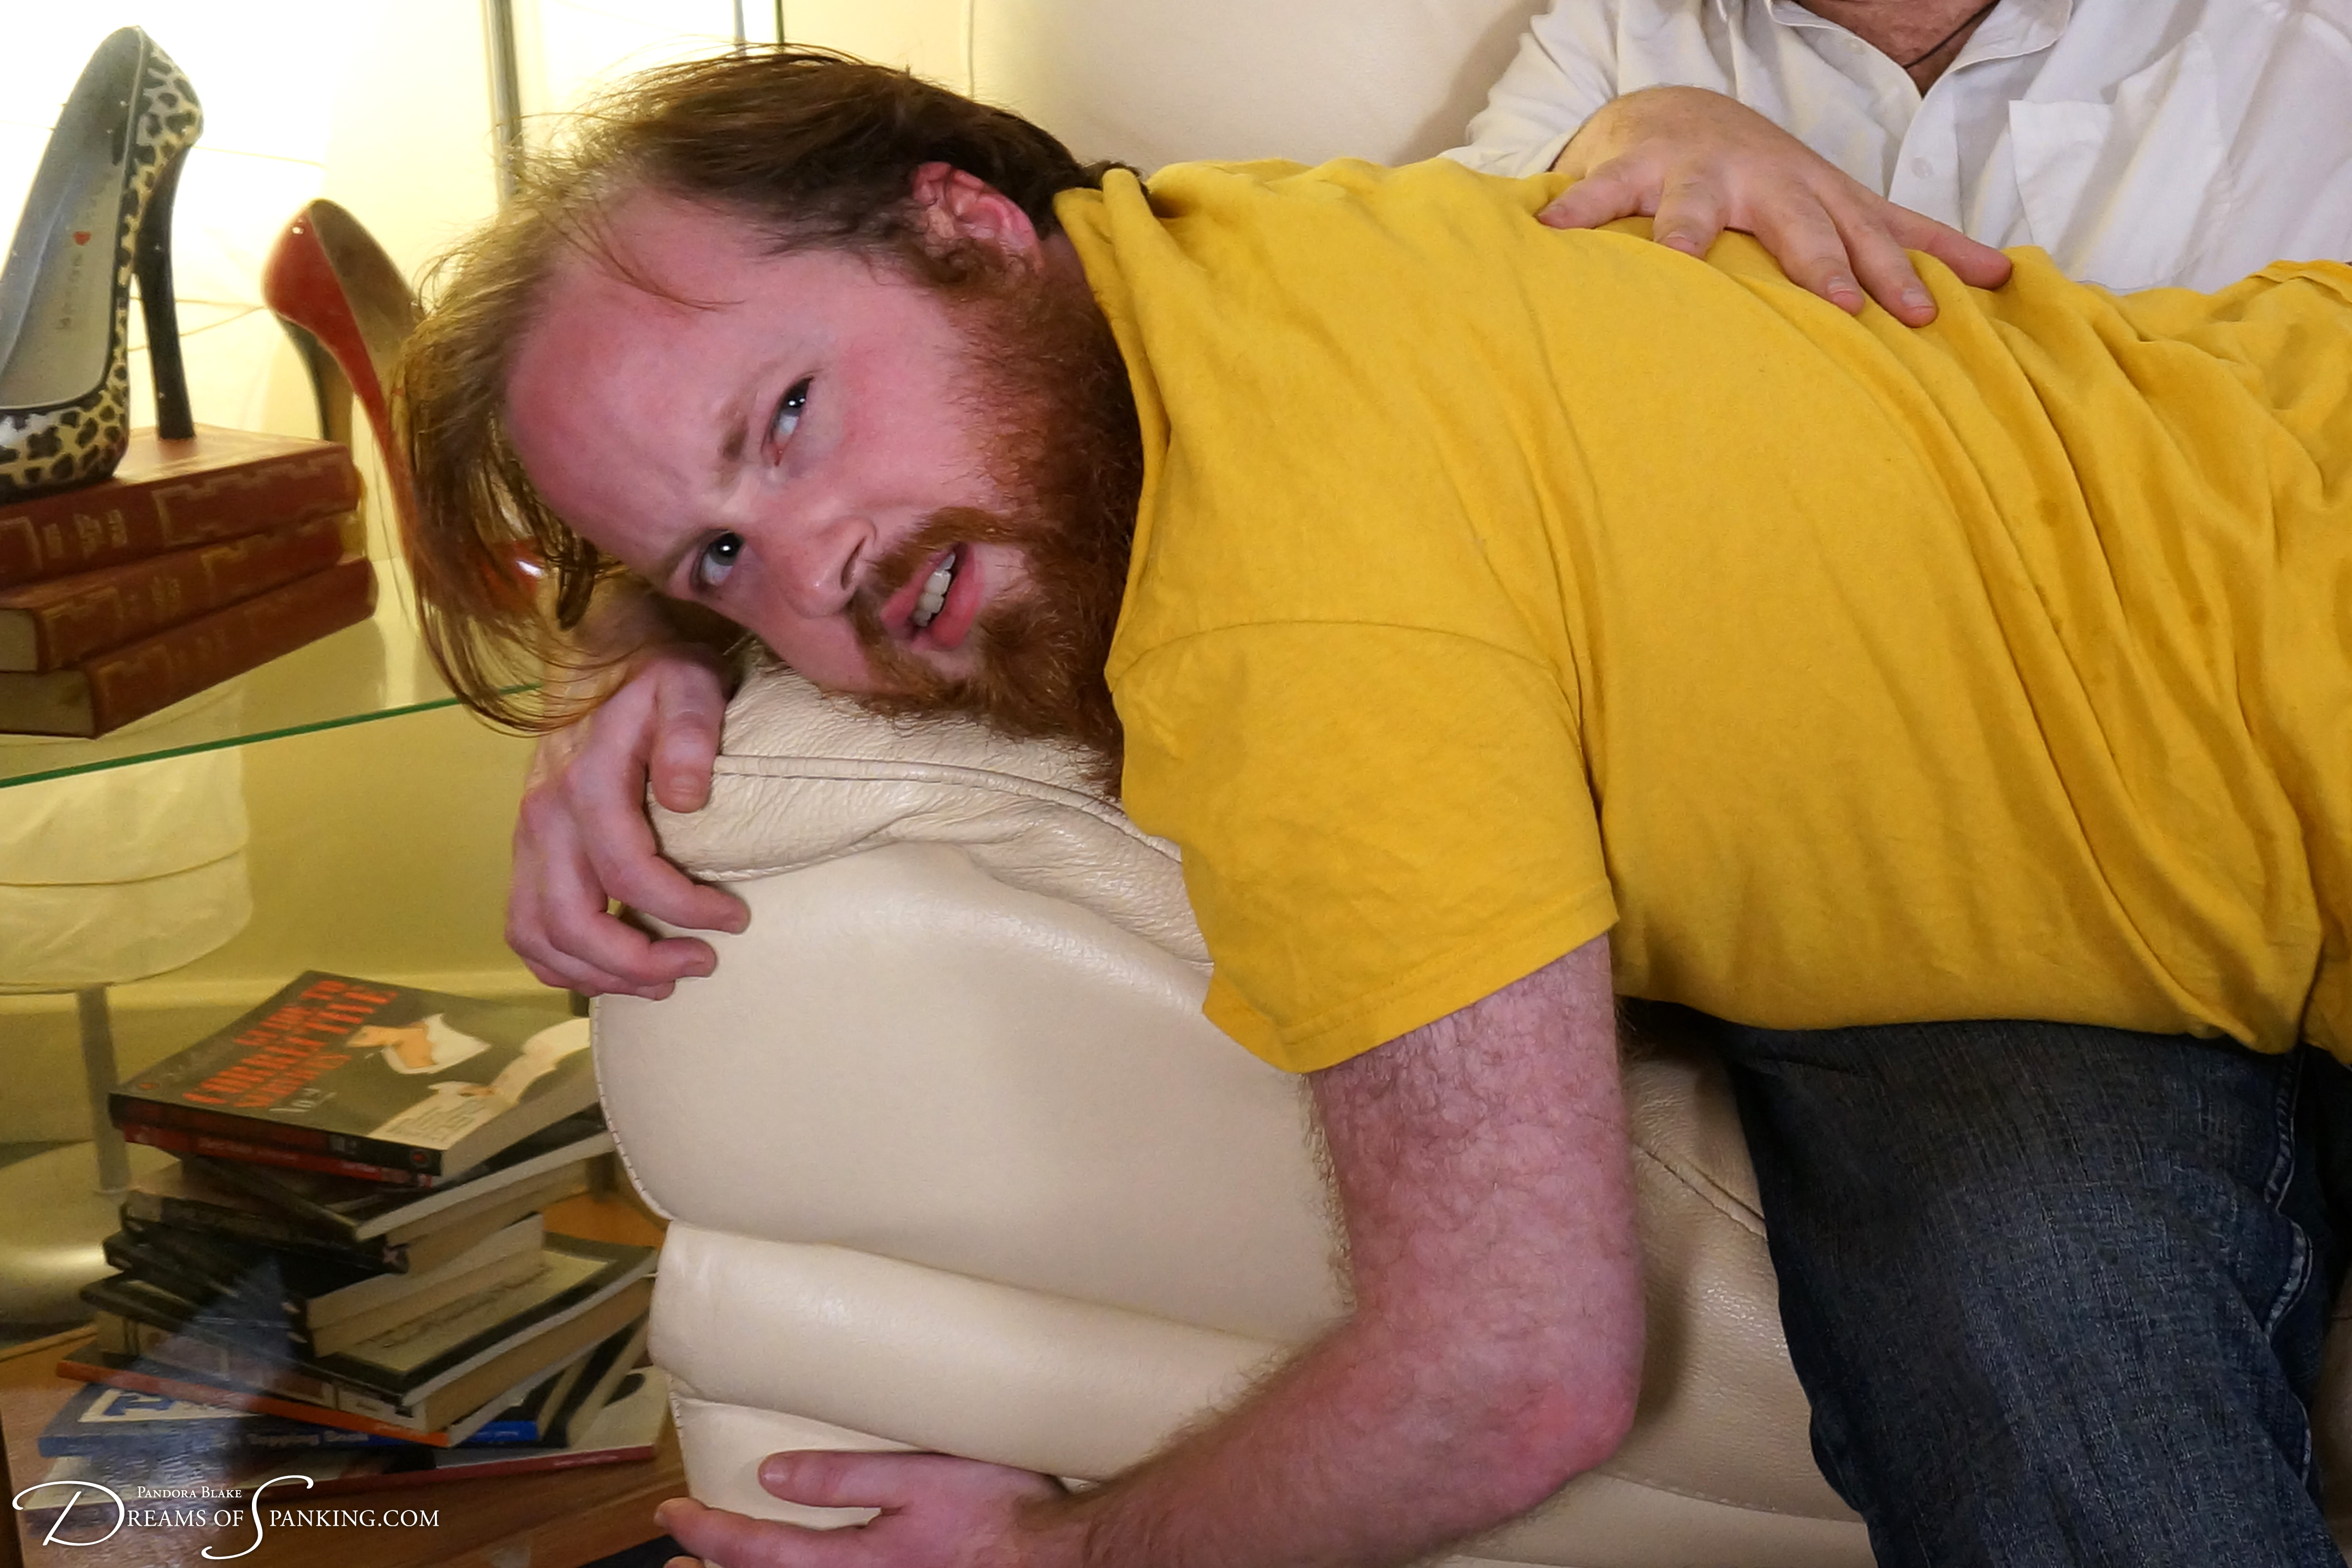 Brotherly Love - Ron Beastly and Seani Love at Dreams of Spanking